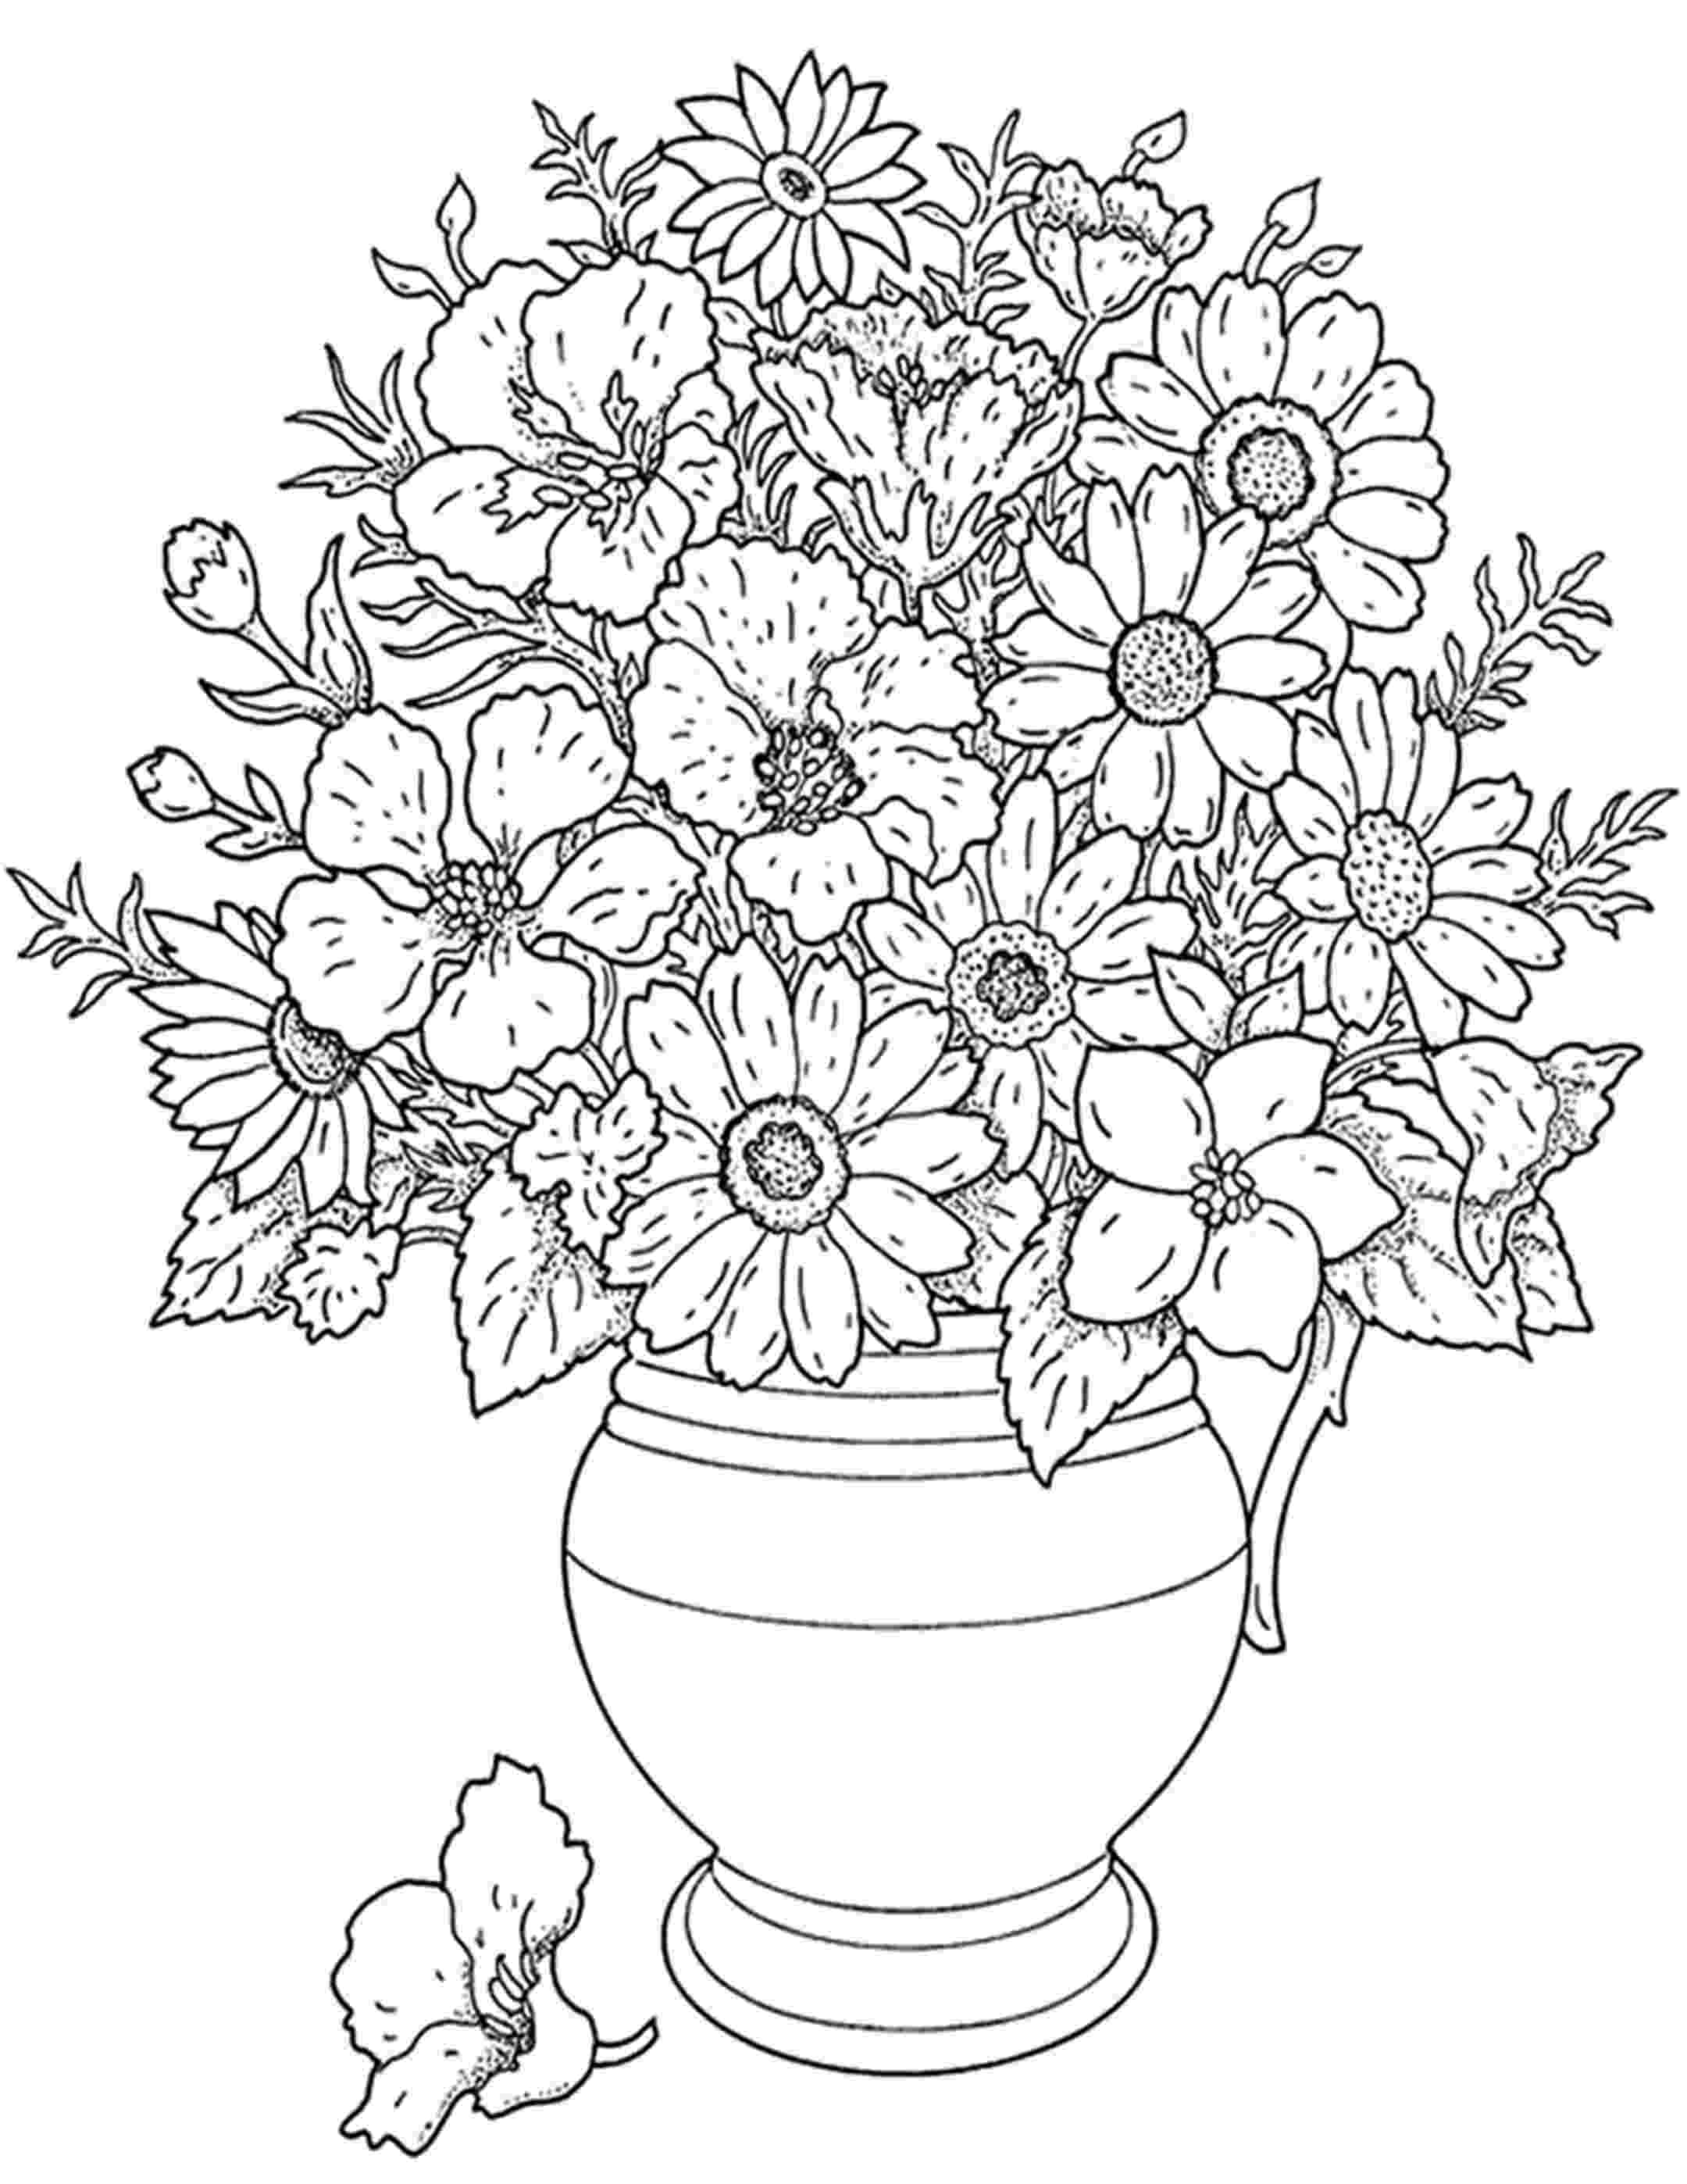 flower printouts summer flowers printable coloring pages free large images printouts flower